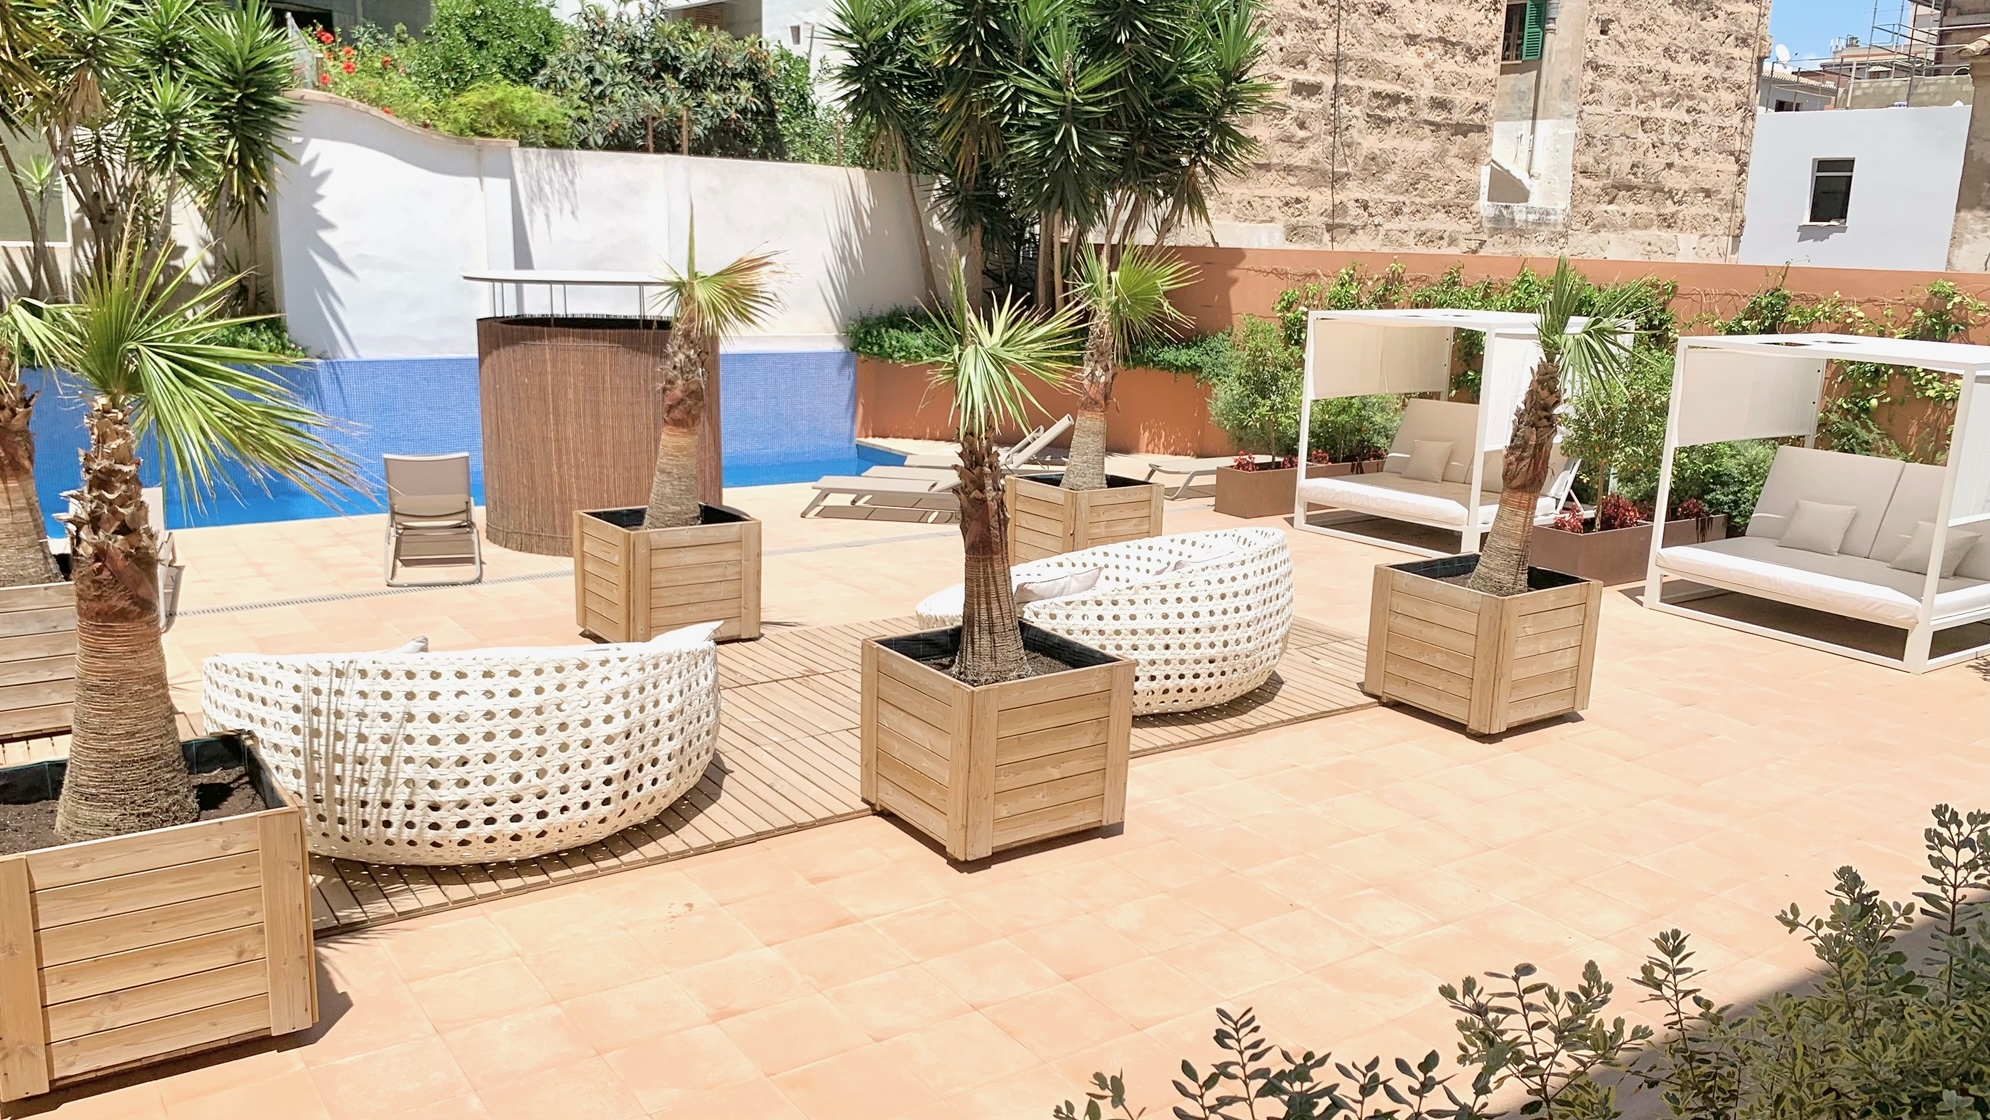 Palma city: New apartments centrally located, with private roof terrace, parking, pool